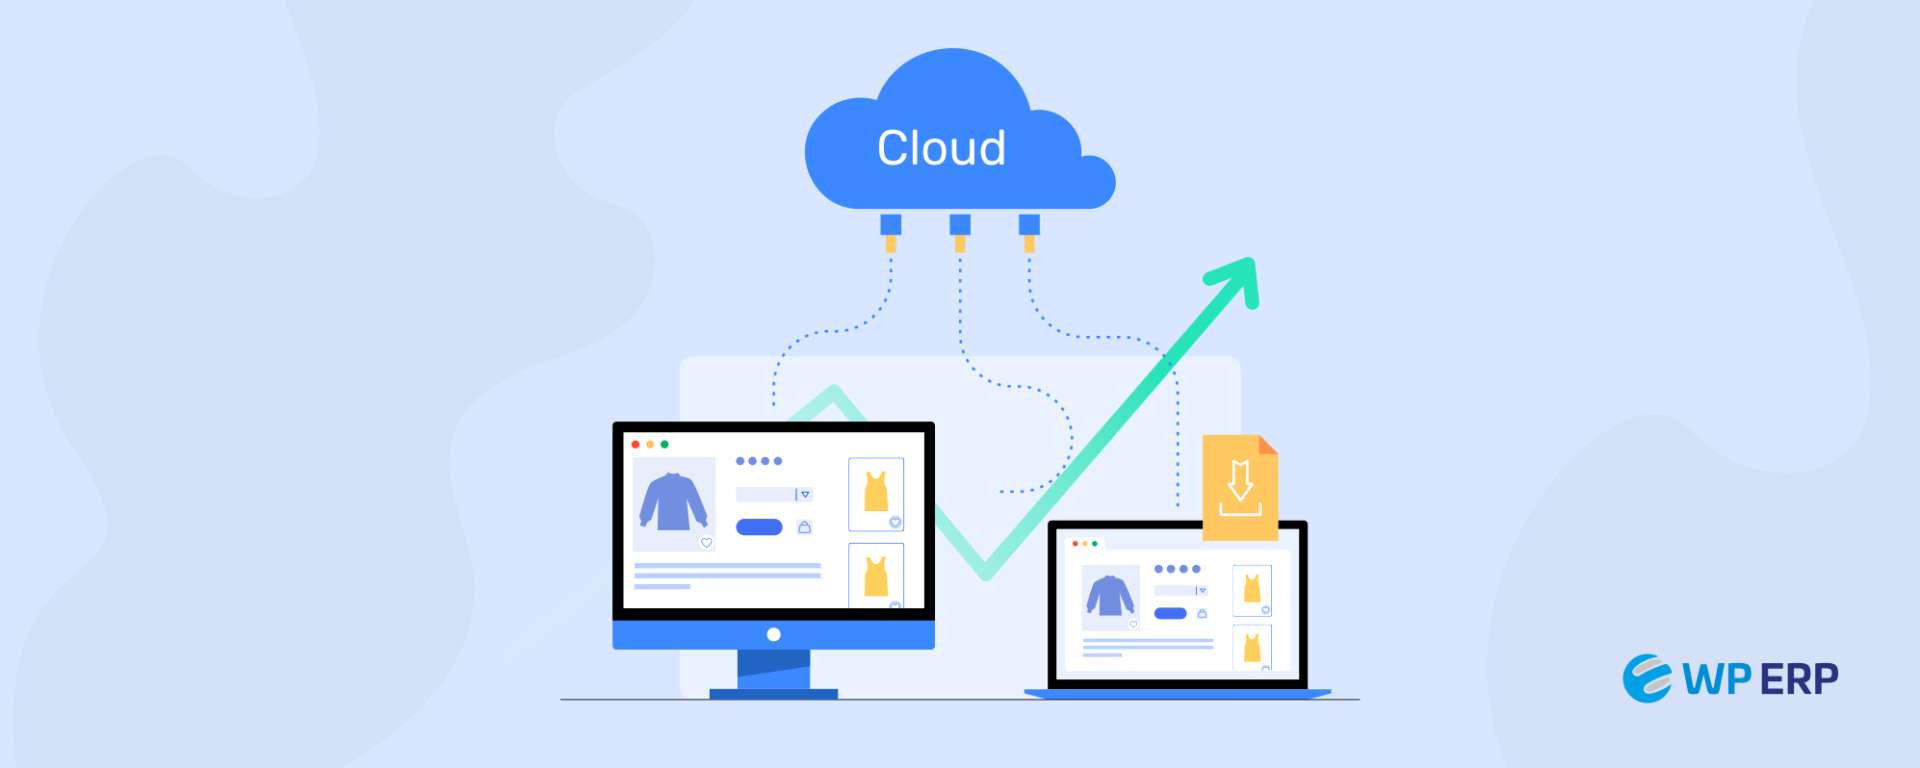 Cloud Services for Small Business